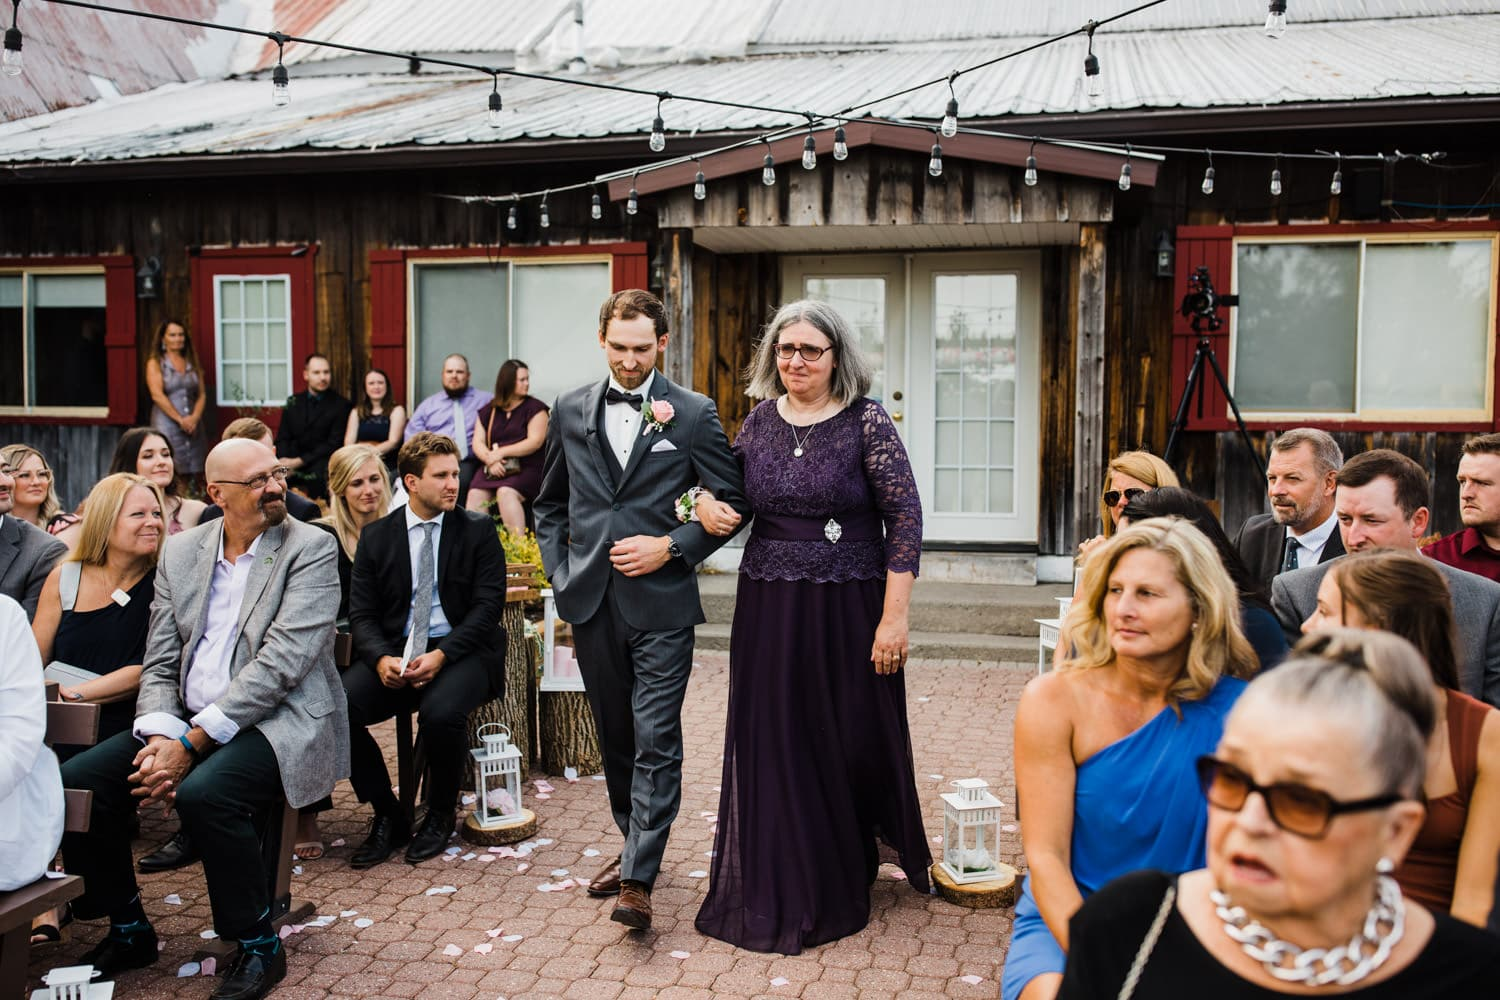 groom walks down aisle with his mother